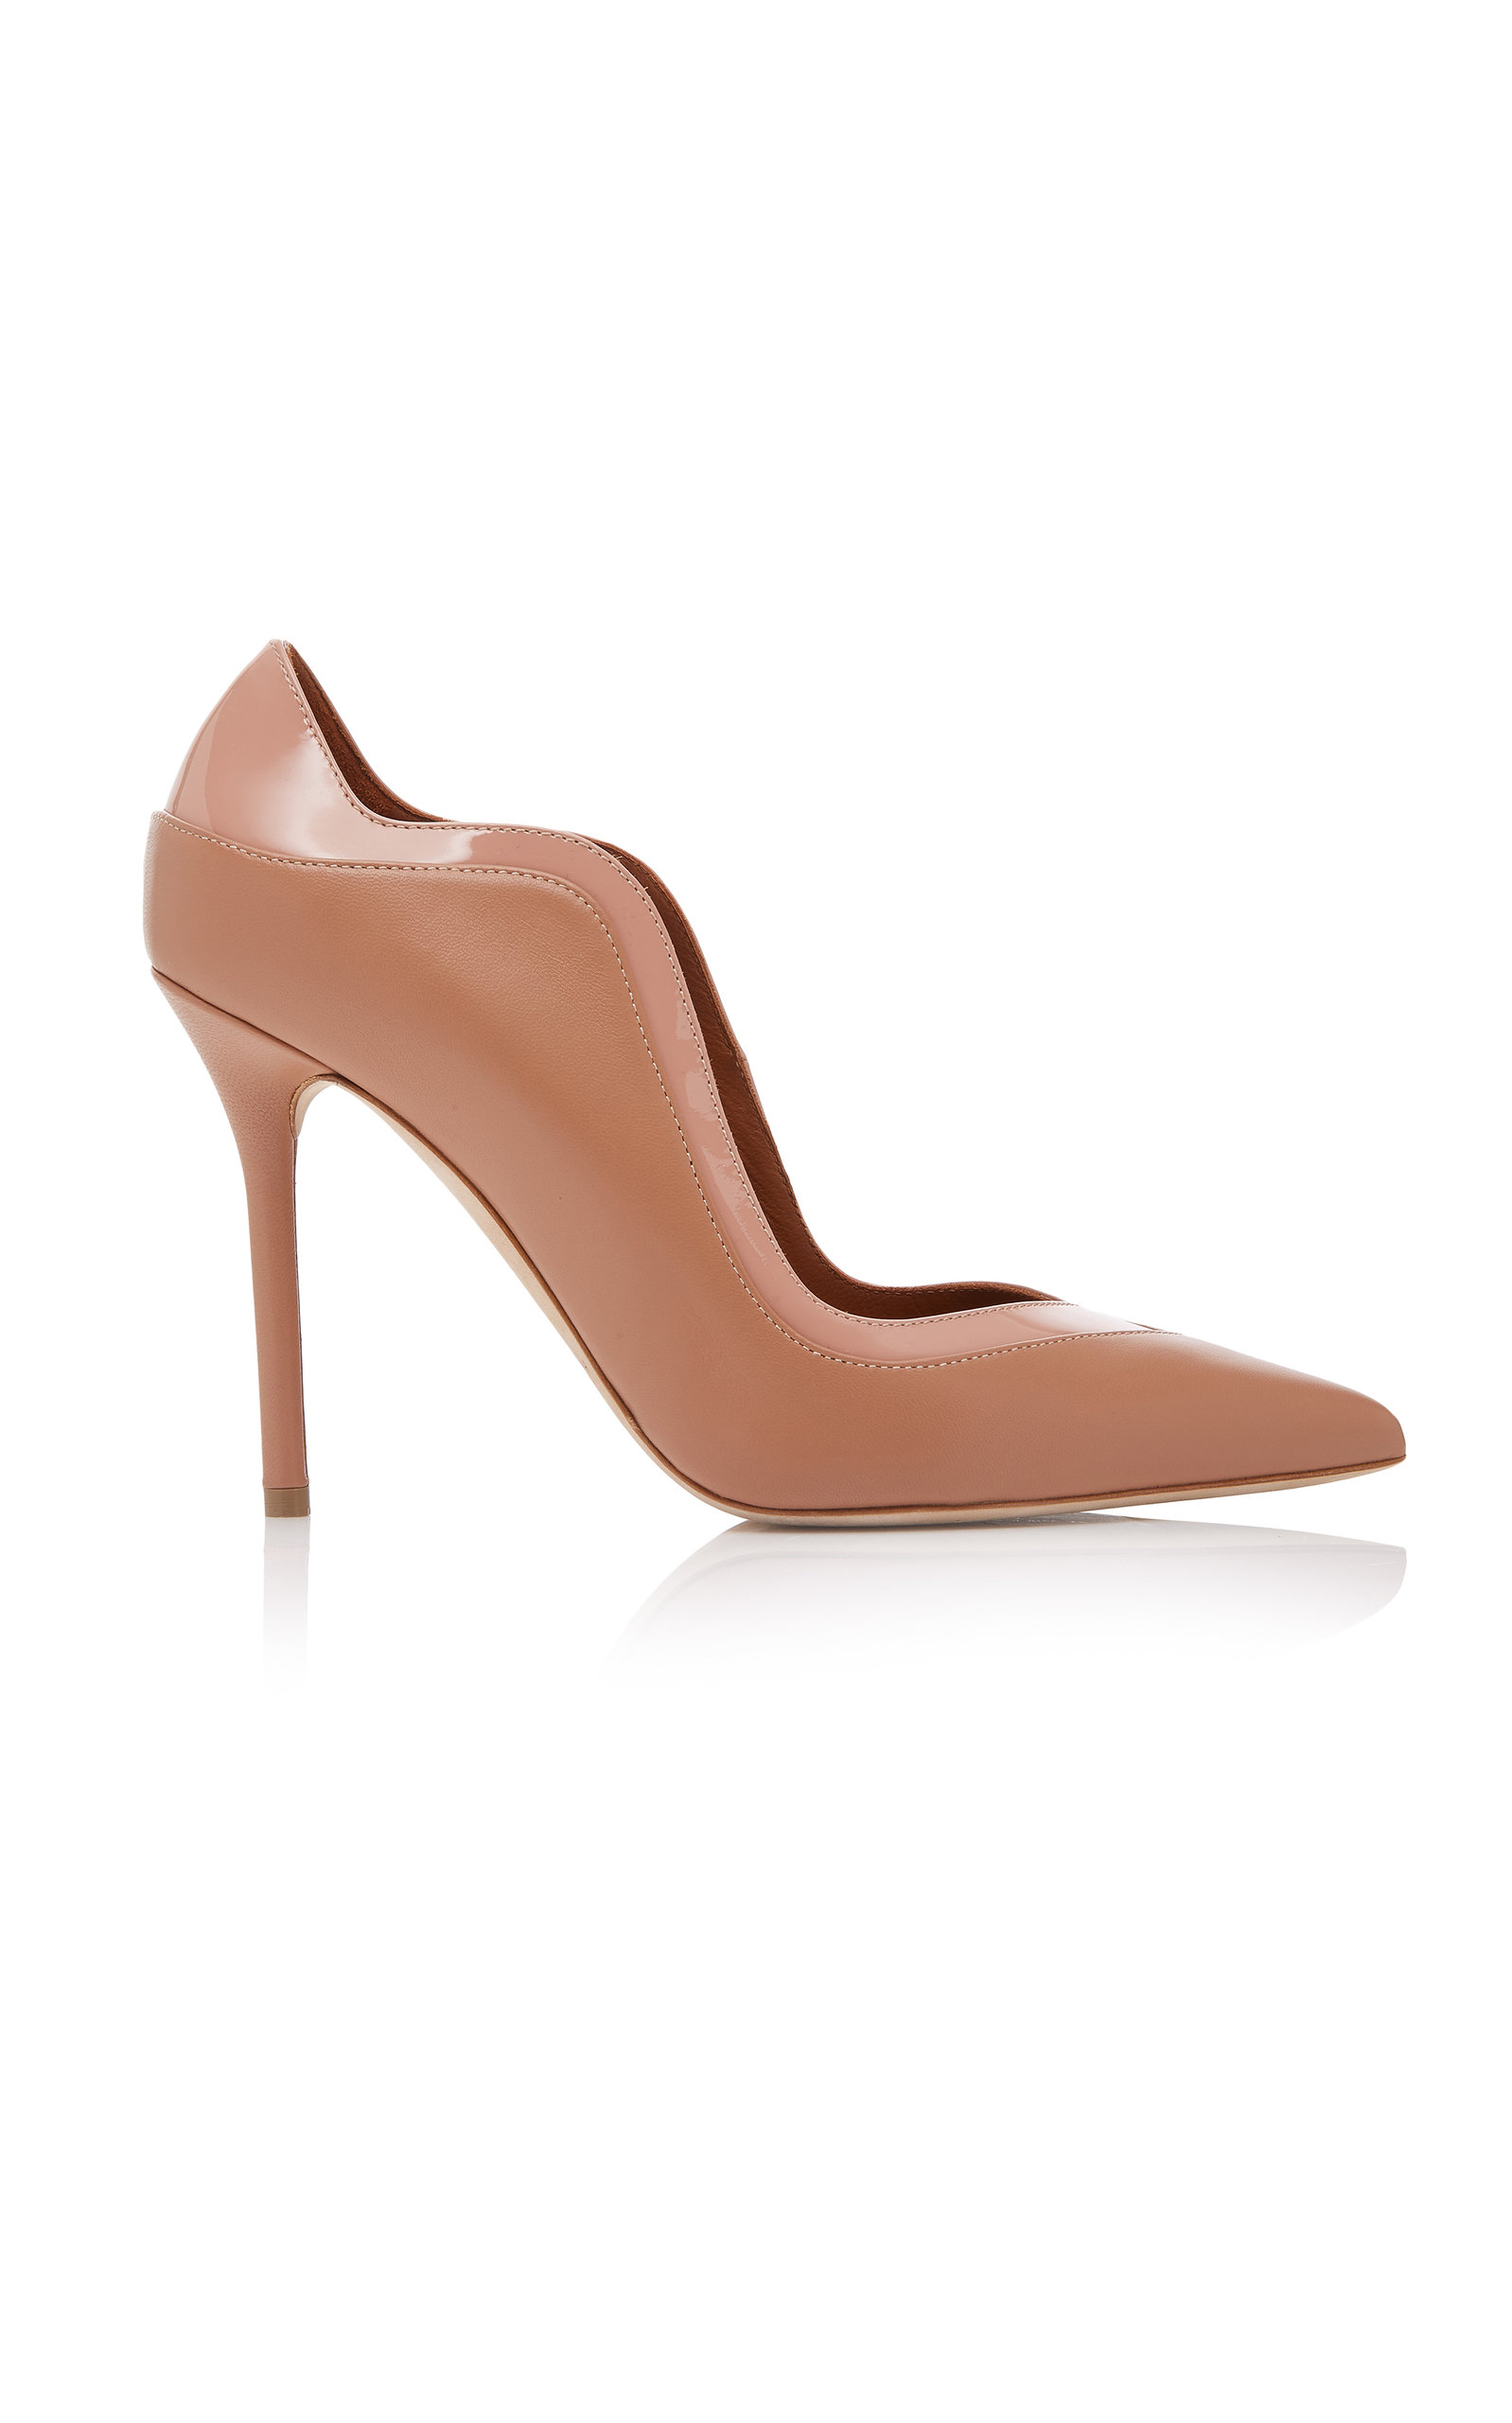 Penelope Nude And Blush Nappa Leather Pumps in Neutrals